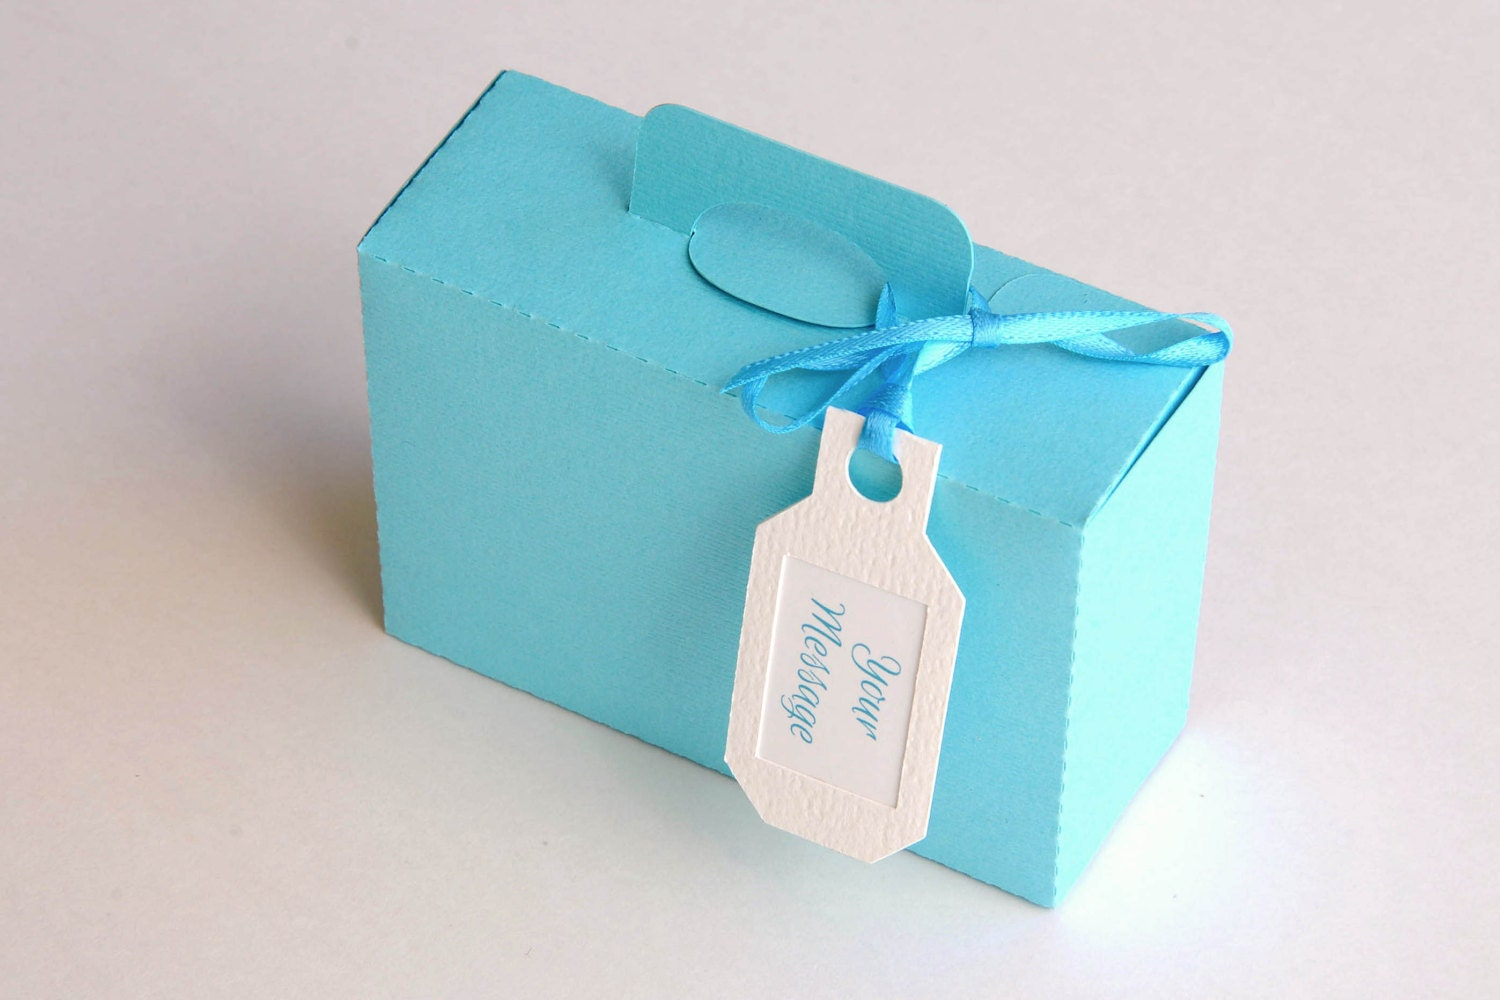 25 Out Of The Box Ideas For Your Destination Wedding: Set Of 10 Mini Mini 1 Suitcase Boxes / Luggage Boxes